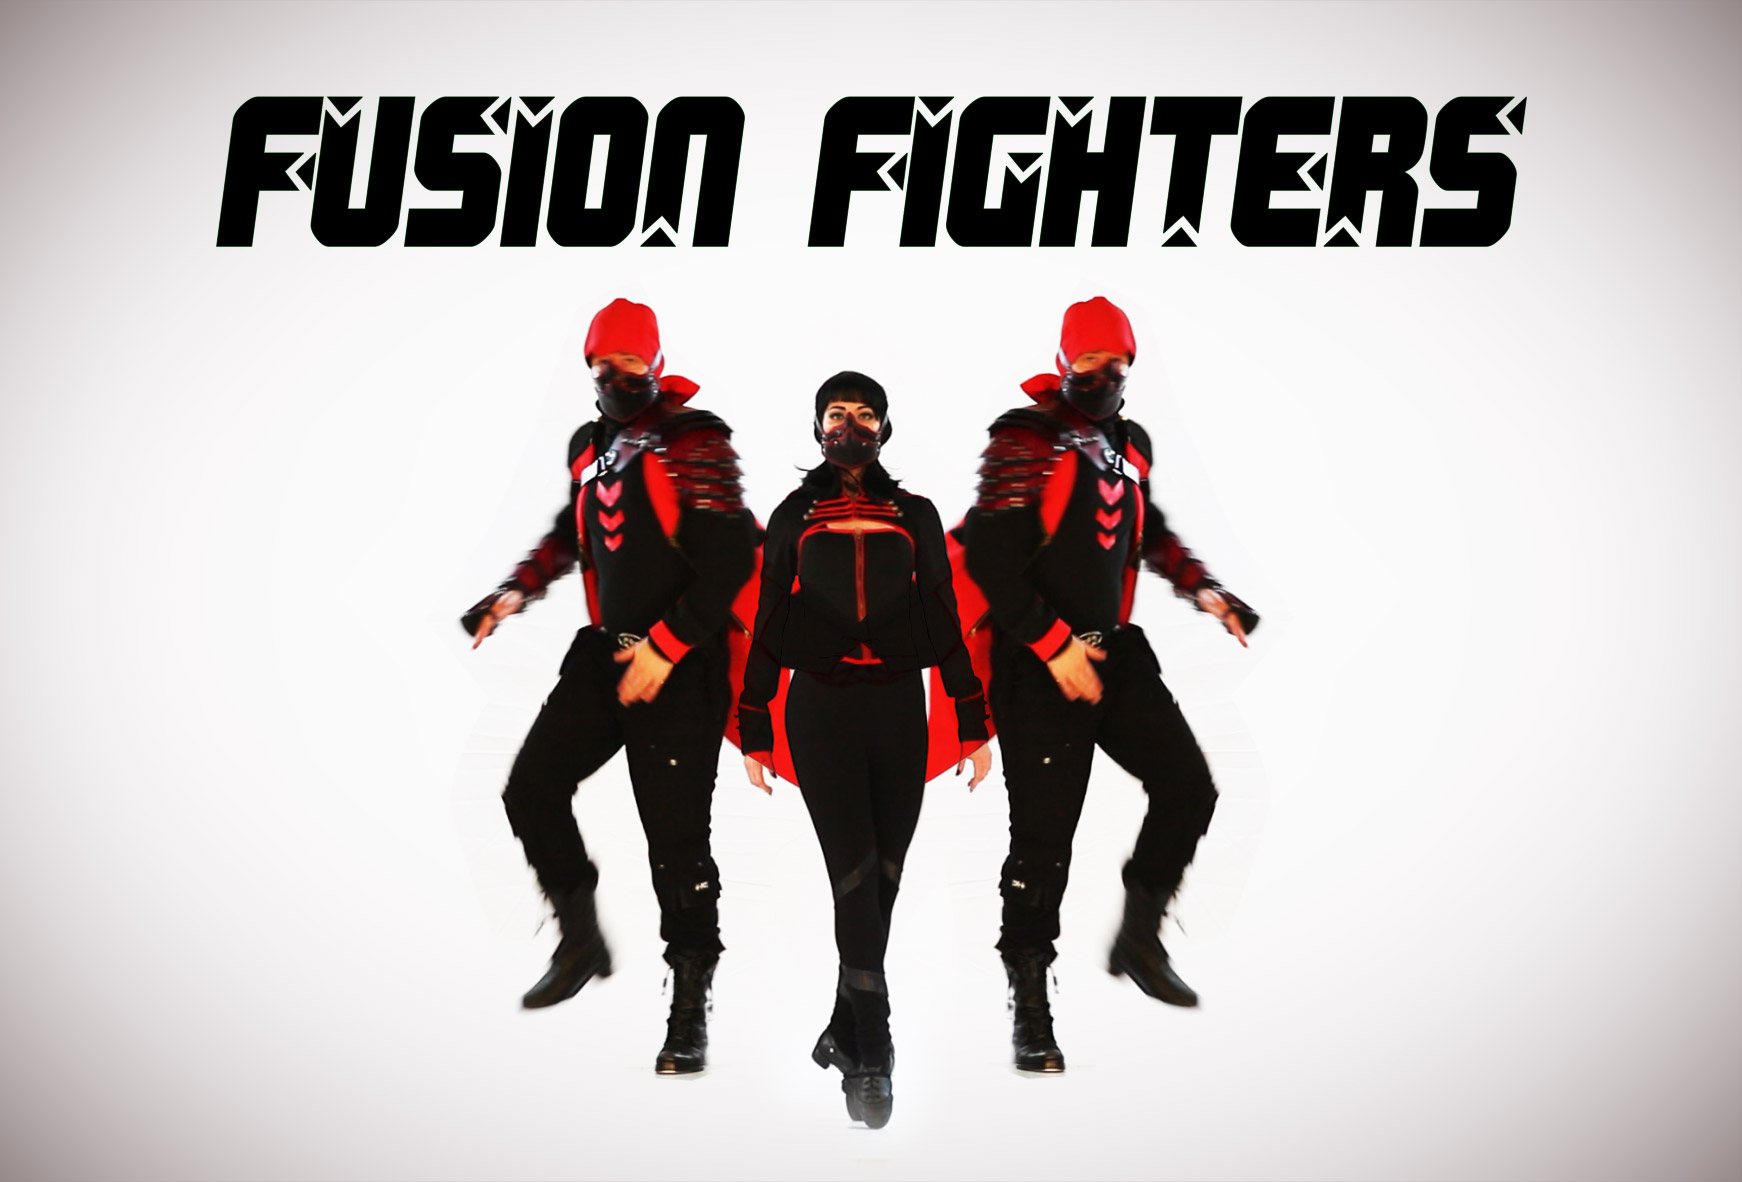 2013-03-12-FusionFighters2.jpg